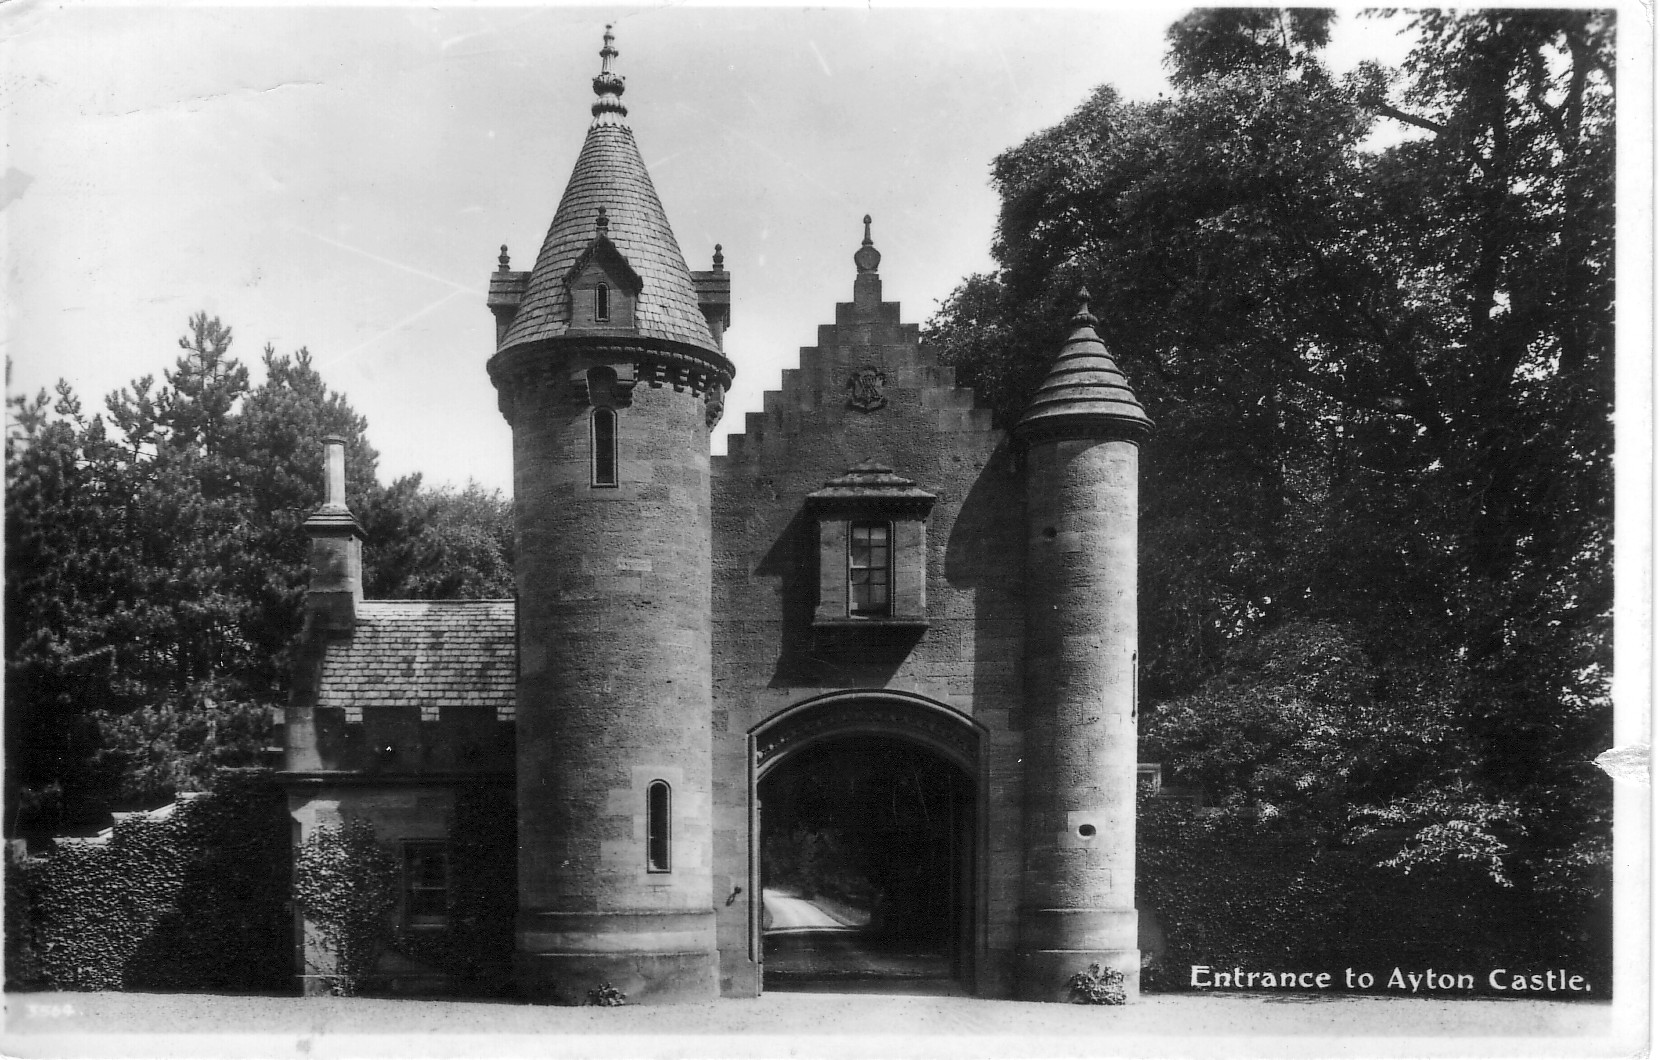 Entrance to Ayton Castle